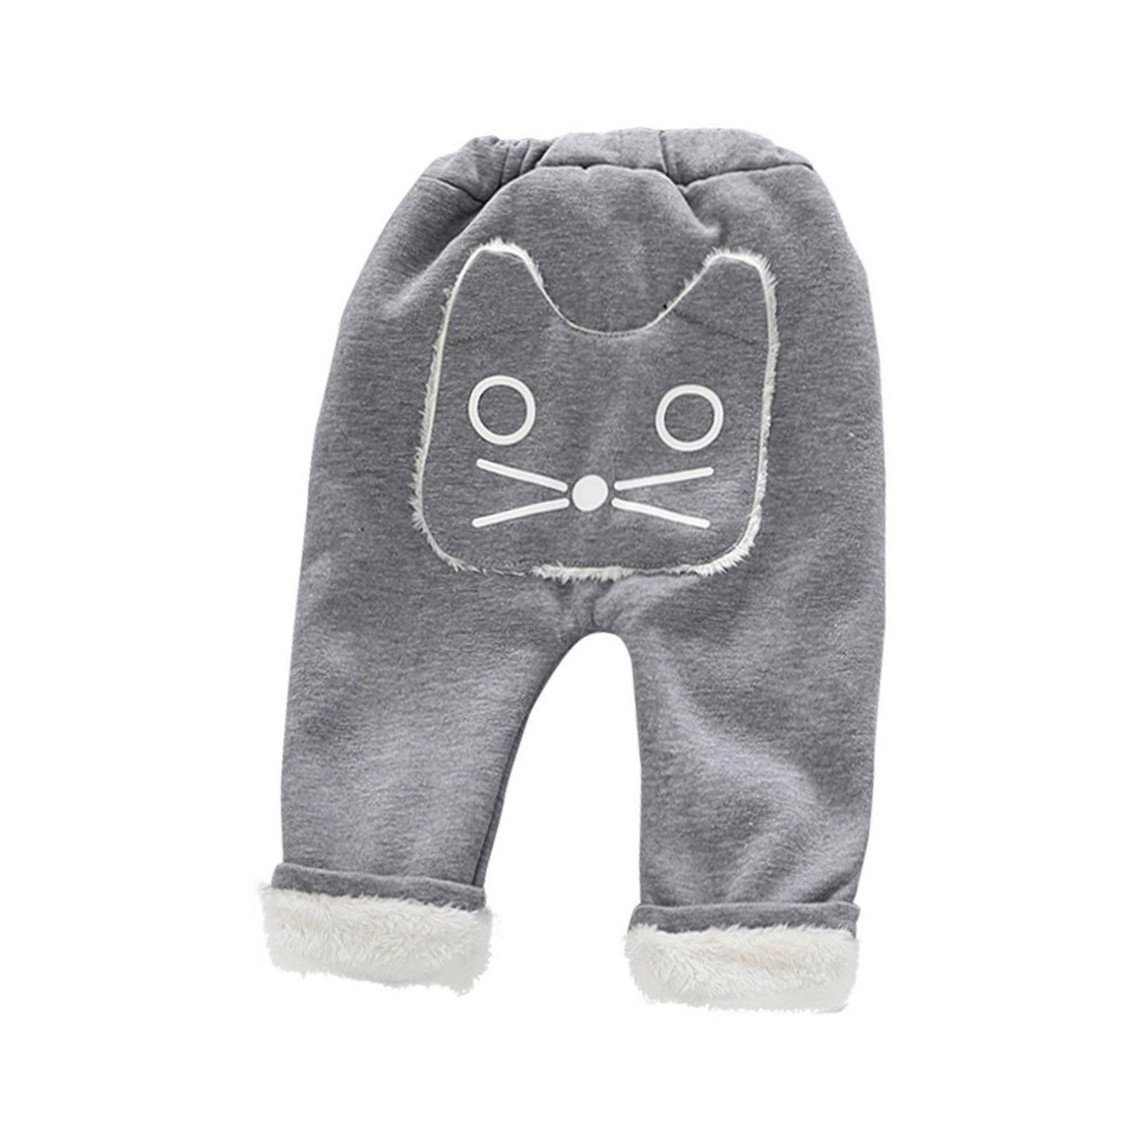 SHOBDW Boys Trousers, Baby Unisex Cute Leggings Velvet Animal Long Super Thick Winter Warm Children Kids Pants SHOBDW-51